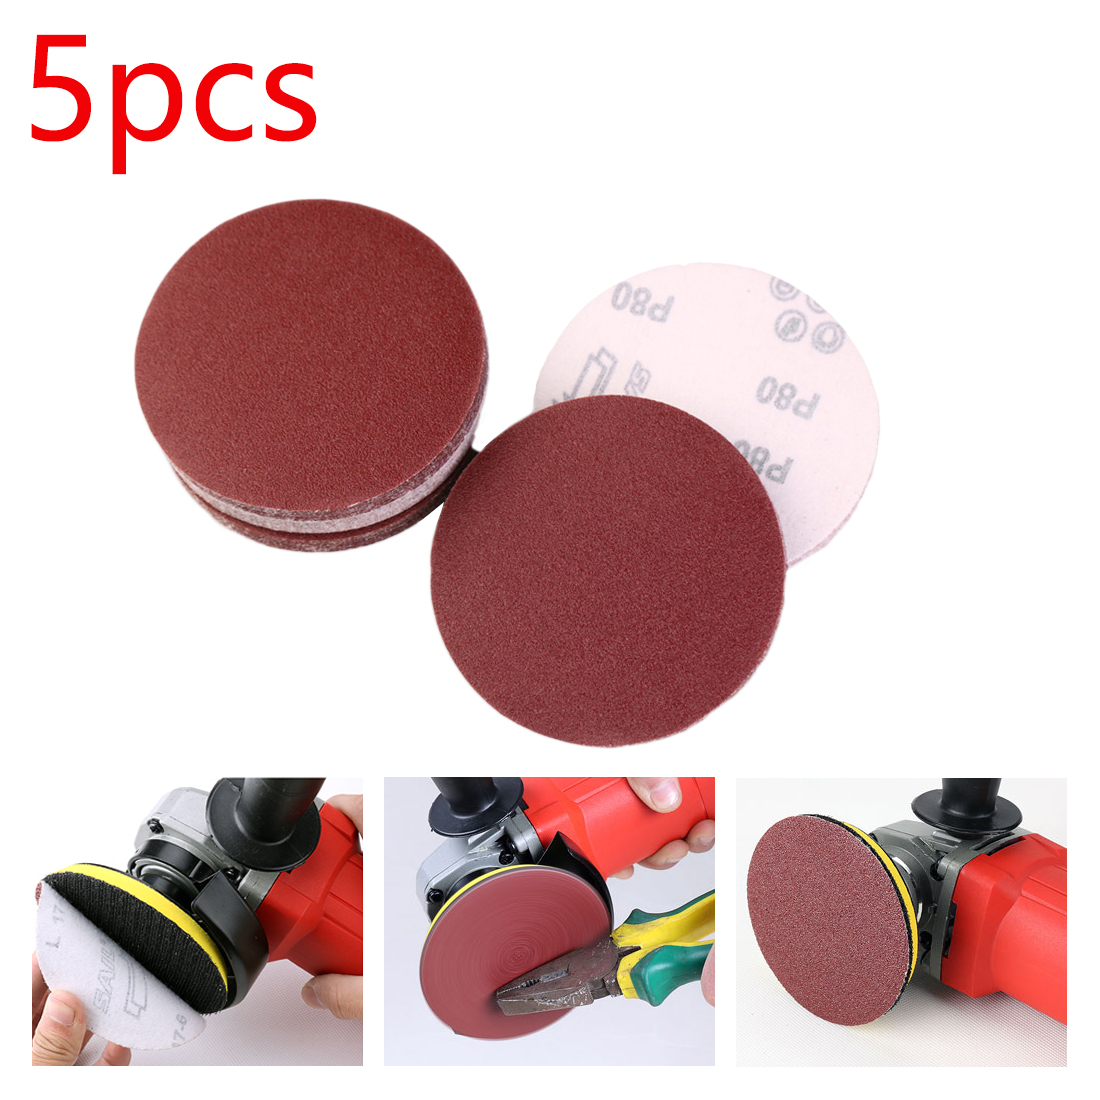 Polishing Discs 5pcs 125mm Red Circular With Grits 80#-1000# Felt Wheel Polishing Sharpening Sand Paper Tool Accessories